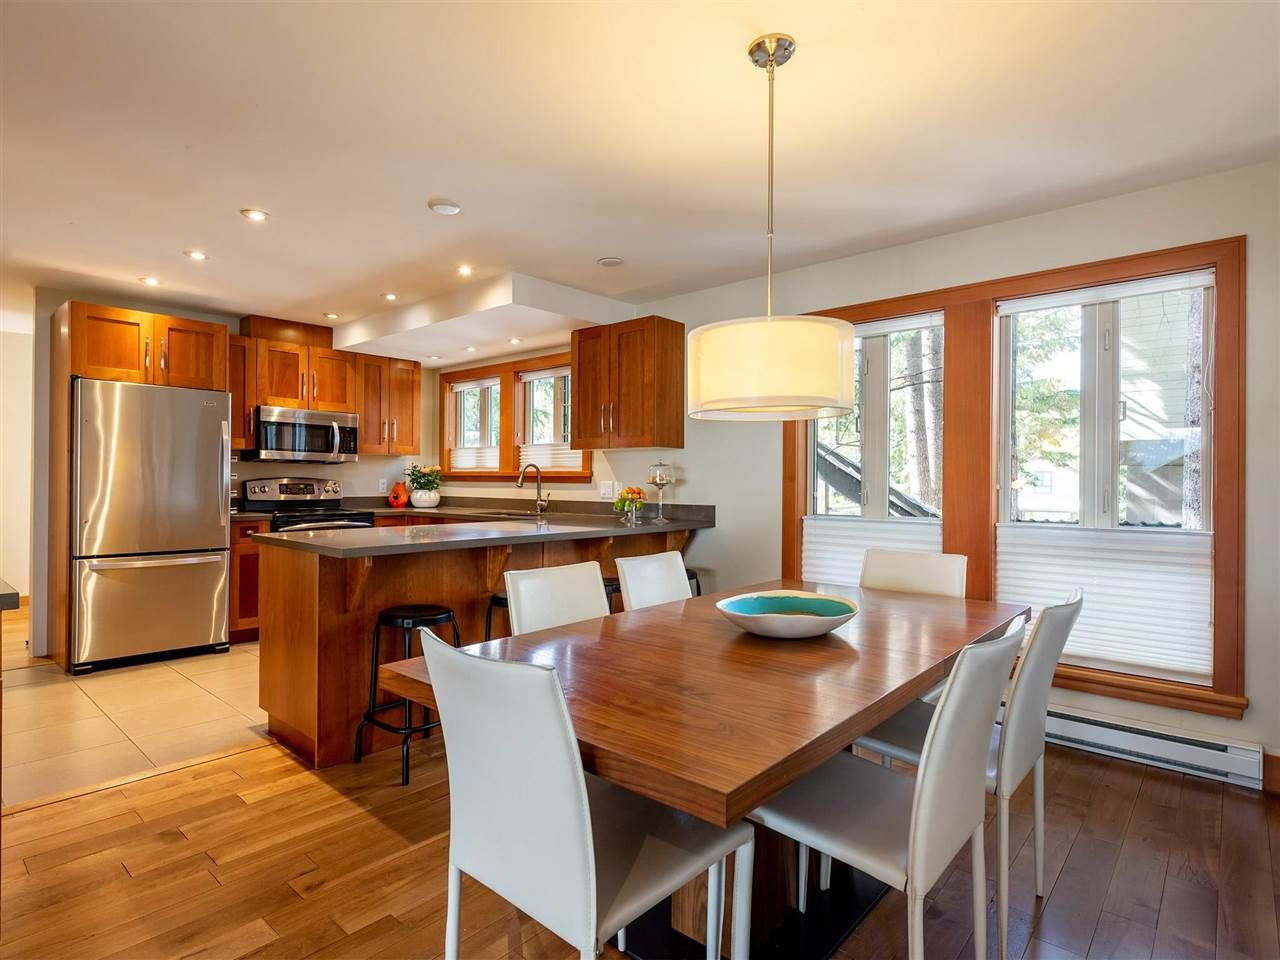 """Main Photo: 21 6125 EAGLE Drive in Whistler: Whistler Cay Heights Townhouse for sale in """"Smoketree"""" : MLS®# R2597965"""